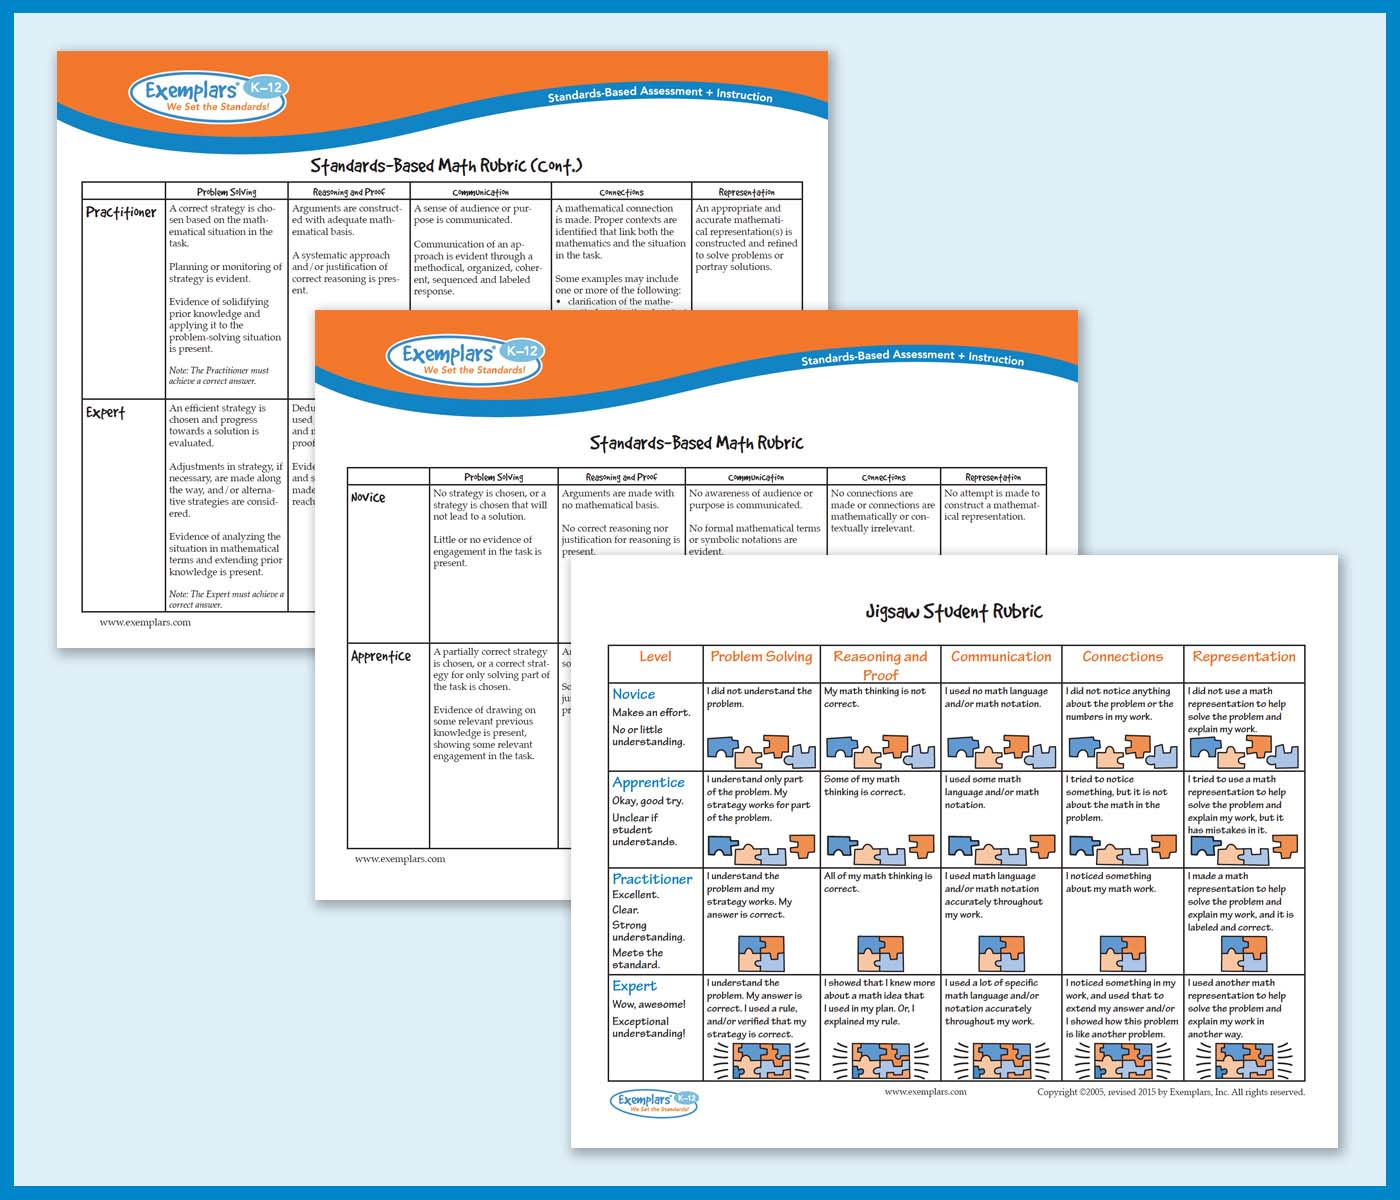 Digital Classroom Resources Exemplars Pearson chapter 12 assessment rubrics for learning 119. digital classroom resources exemplars